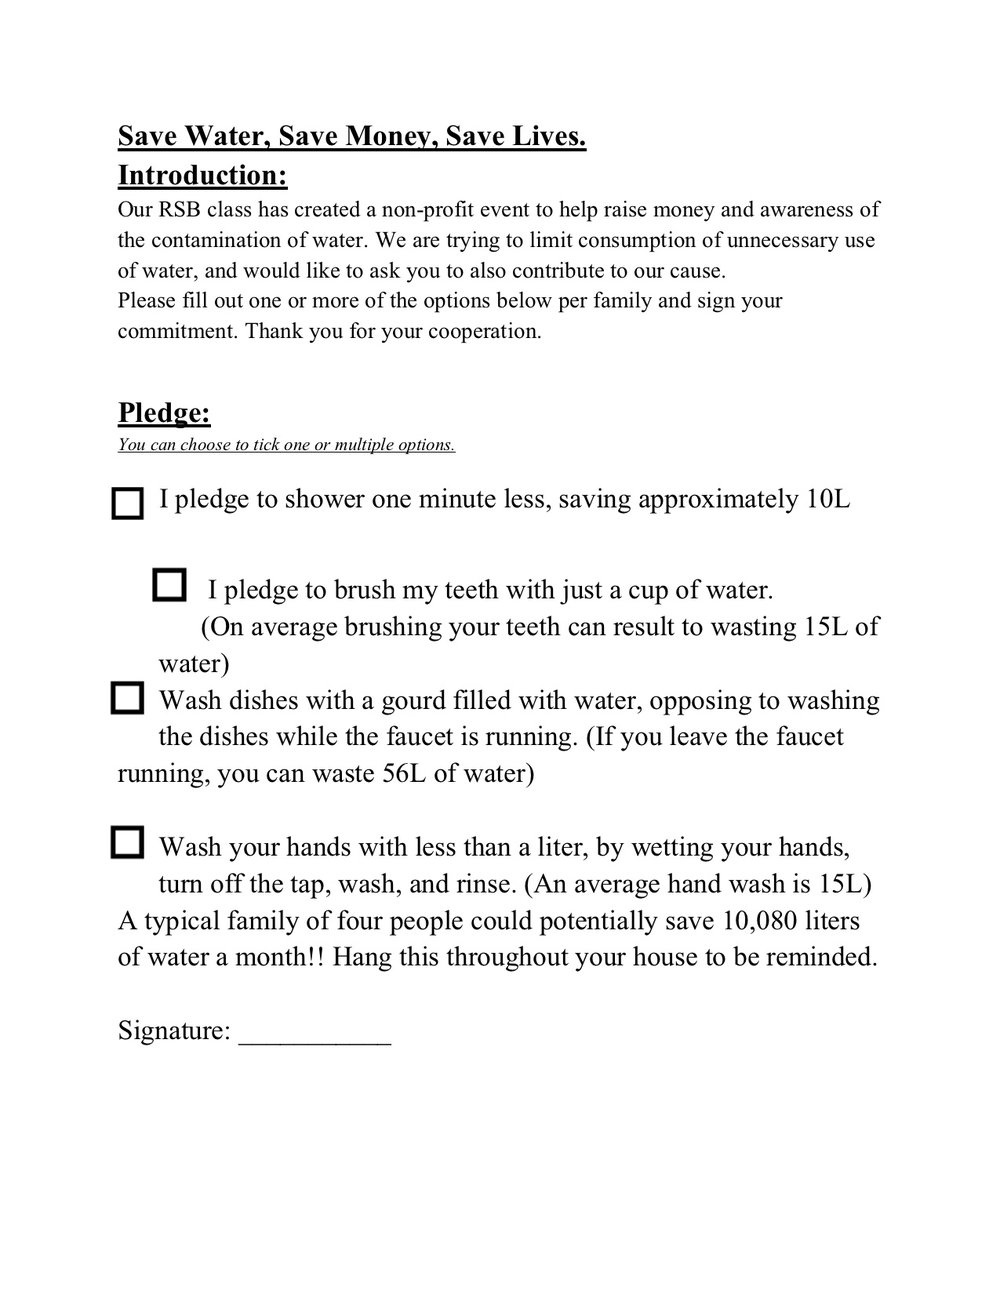 The pledge sheet we made and shared with movie night participants, as well as all of the middle school staff.